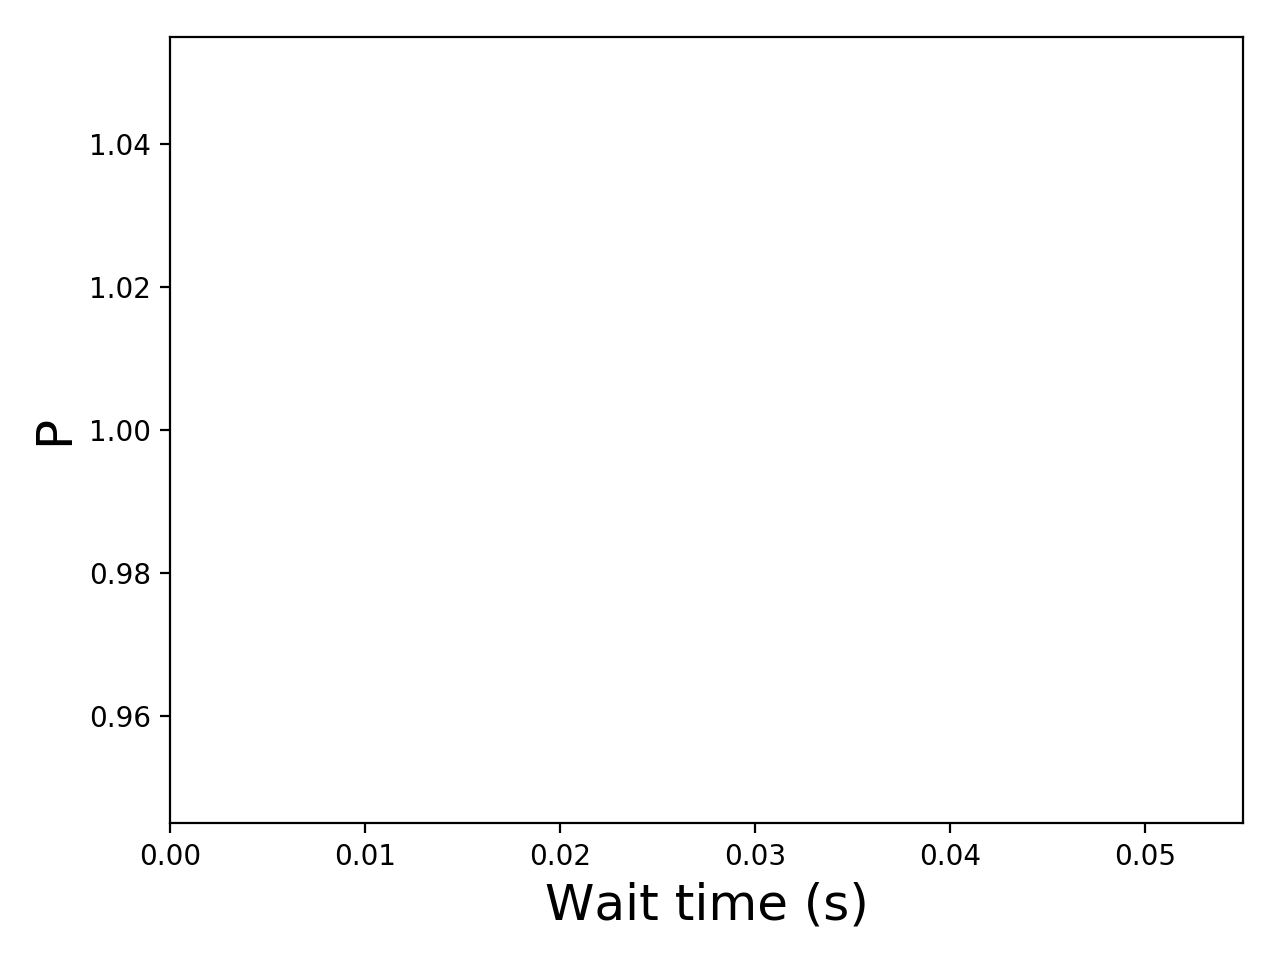 Task wait time CDF graph for the askalon-new_ee43 trace.